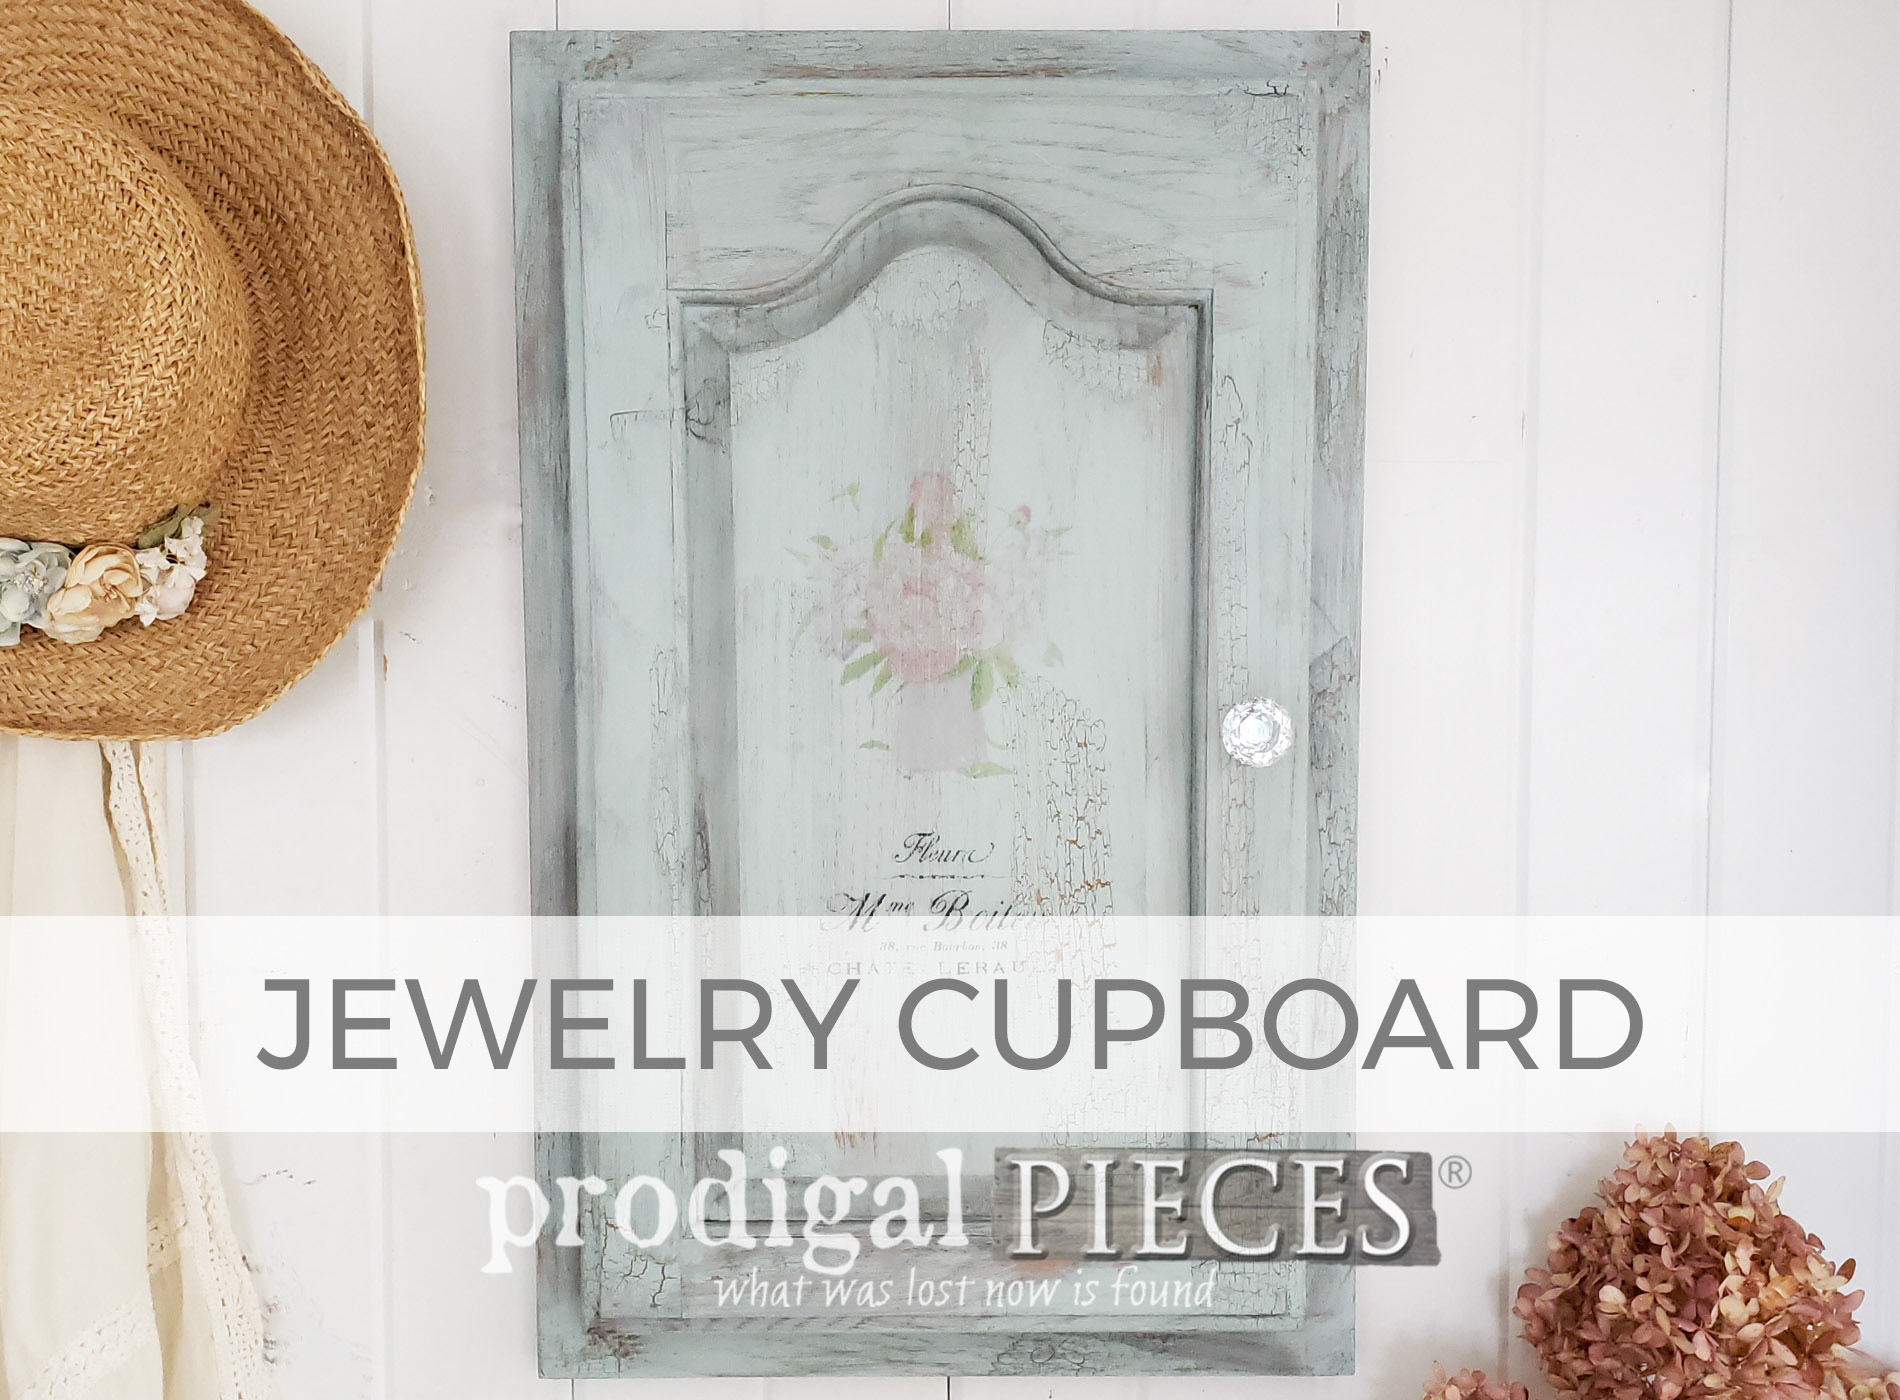 Upcycled Cupboard Door into Jewelry Cupboard by Larissa of Prodigal Pieces | prodigalpieces.com